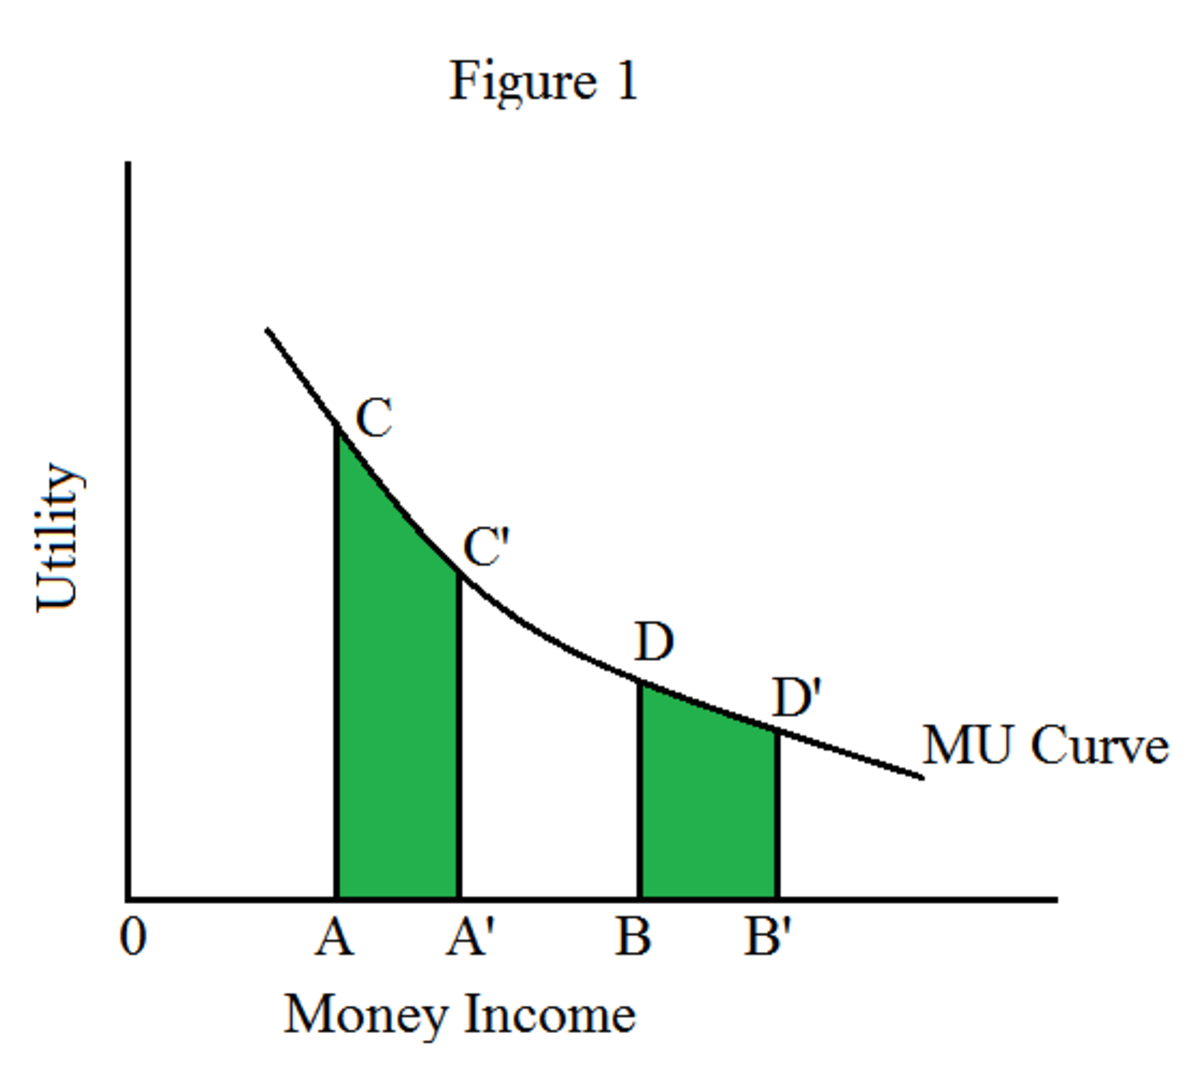 Advantages of the Law of Diminishing Marginal Utility